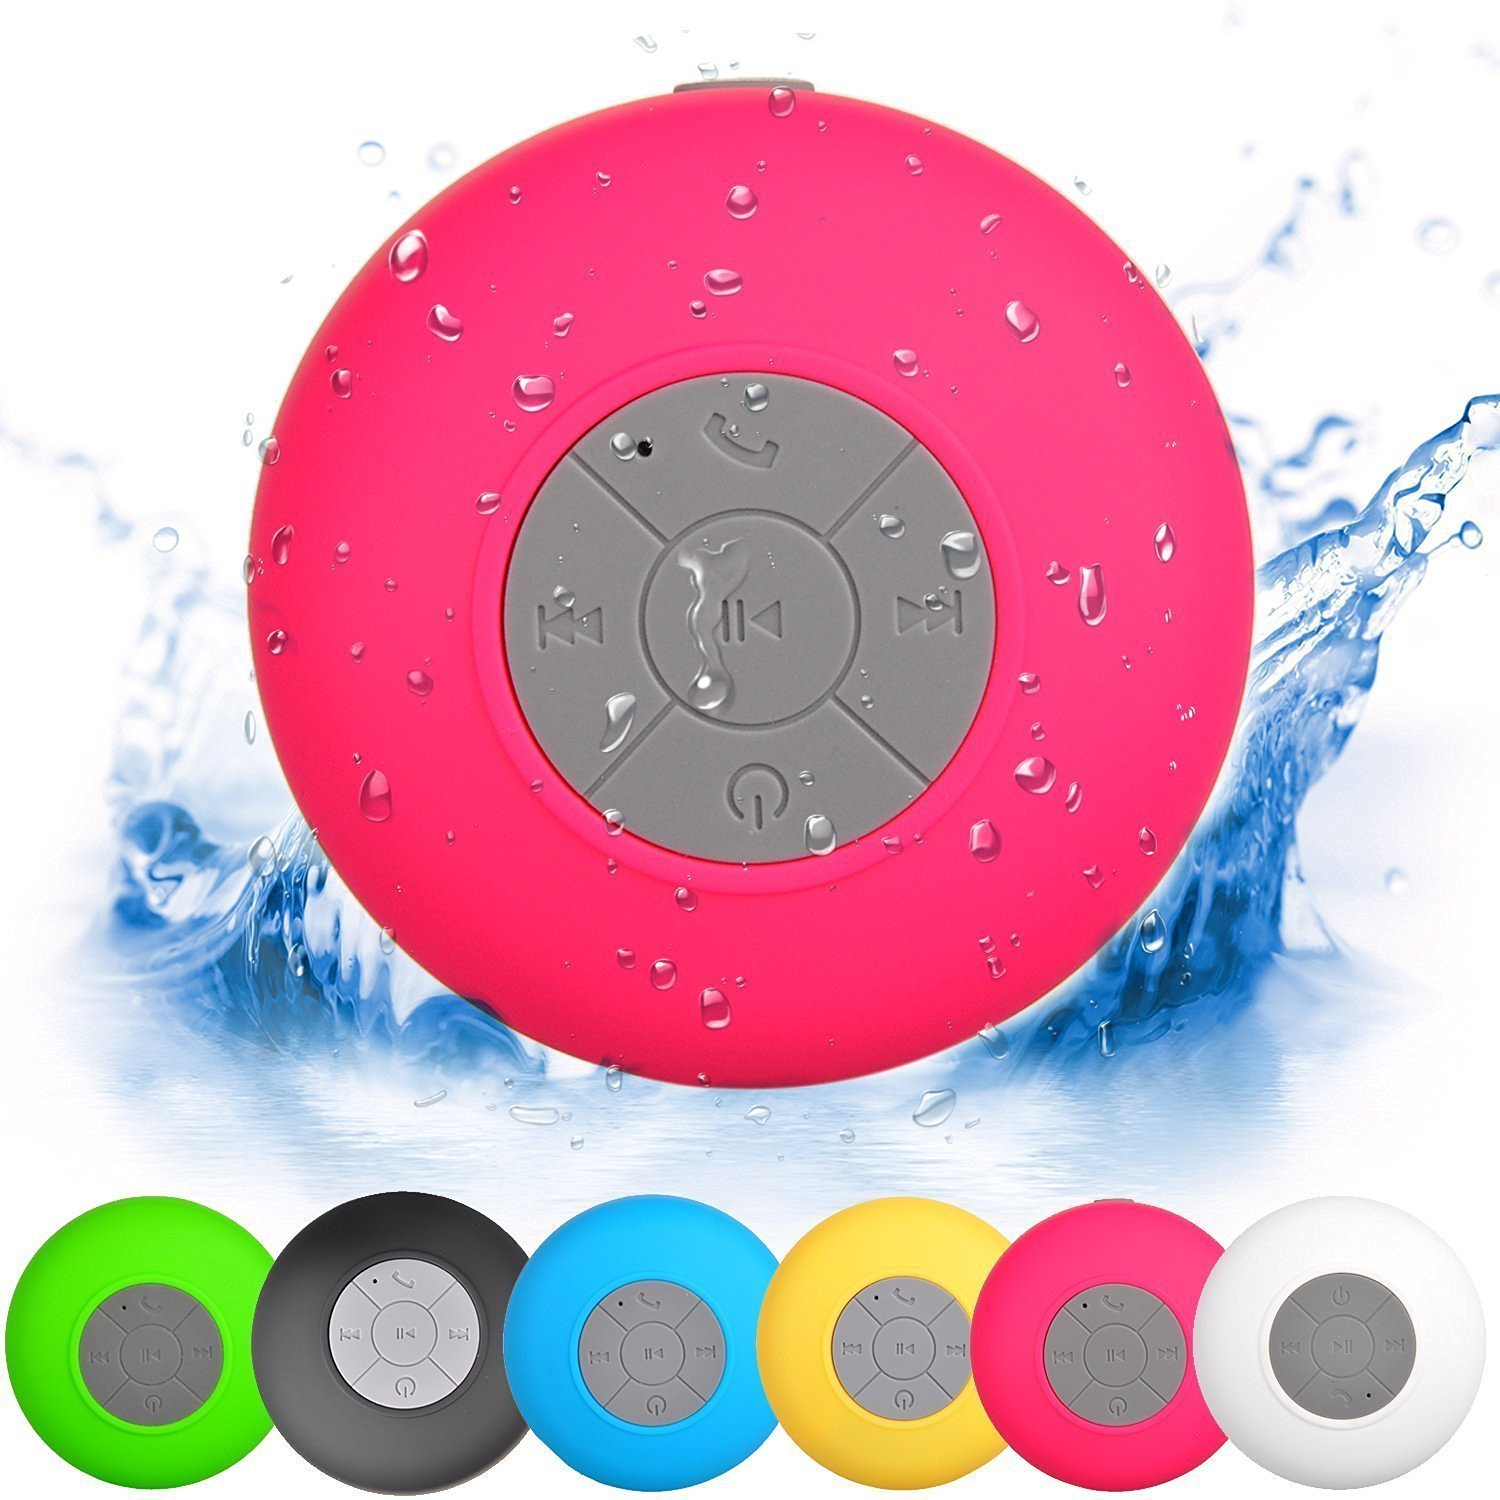 SeCro™ Waterproof Bluetooth Speaker 49% OFF + FREE SHIPPING discount offer